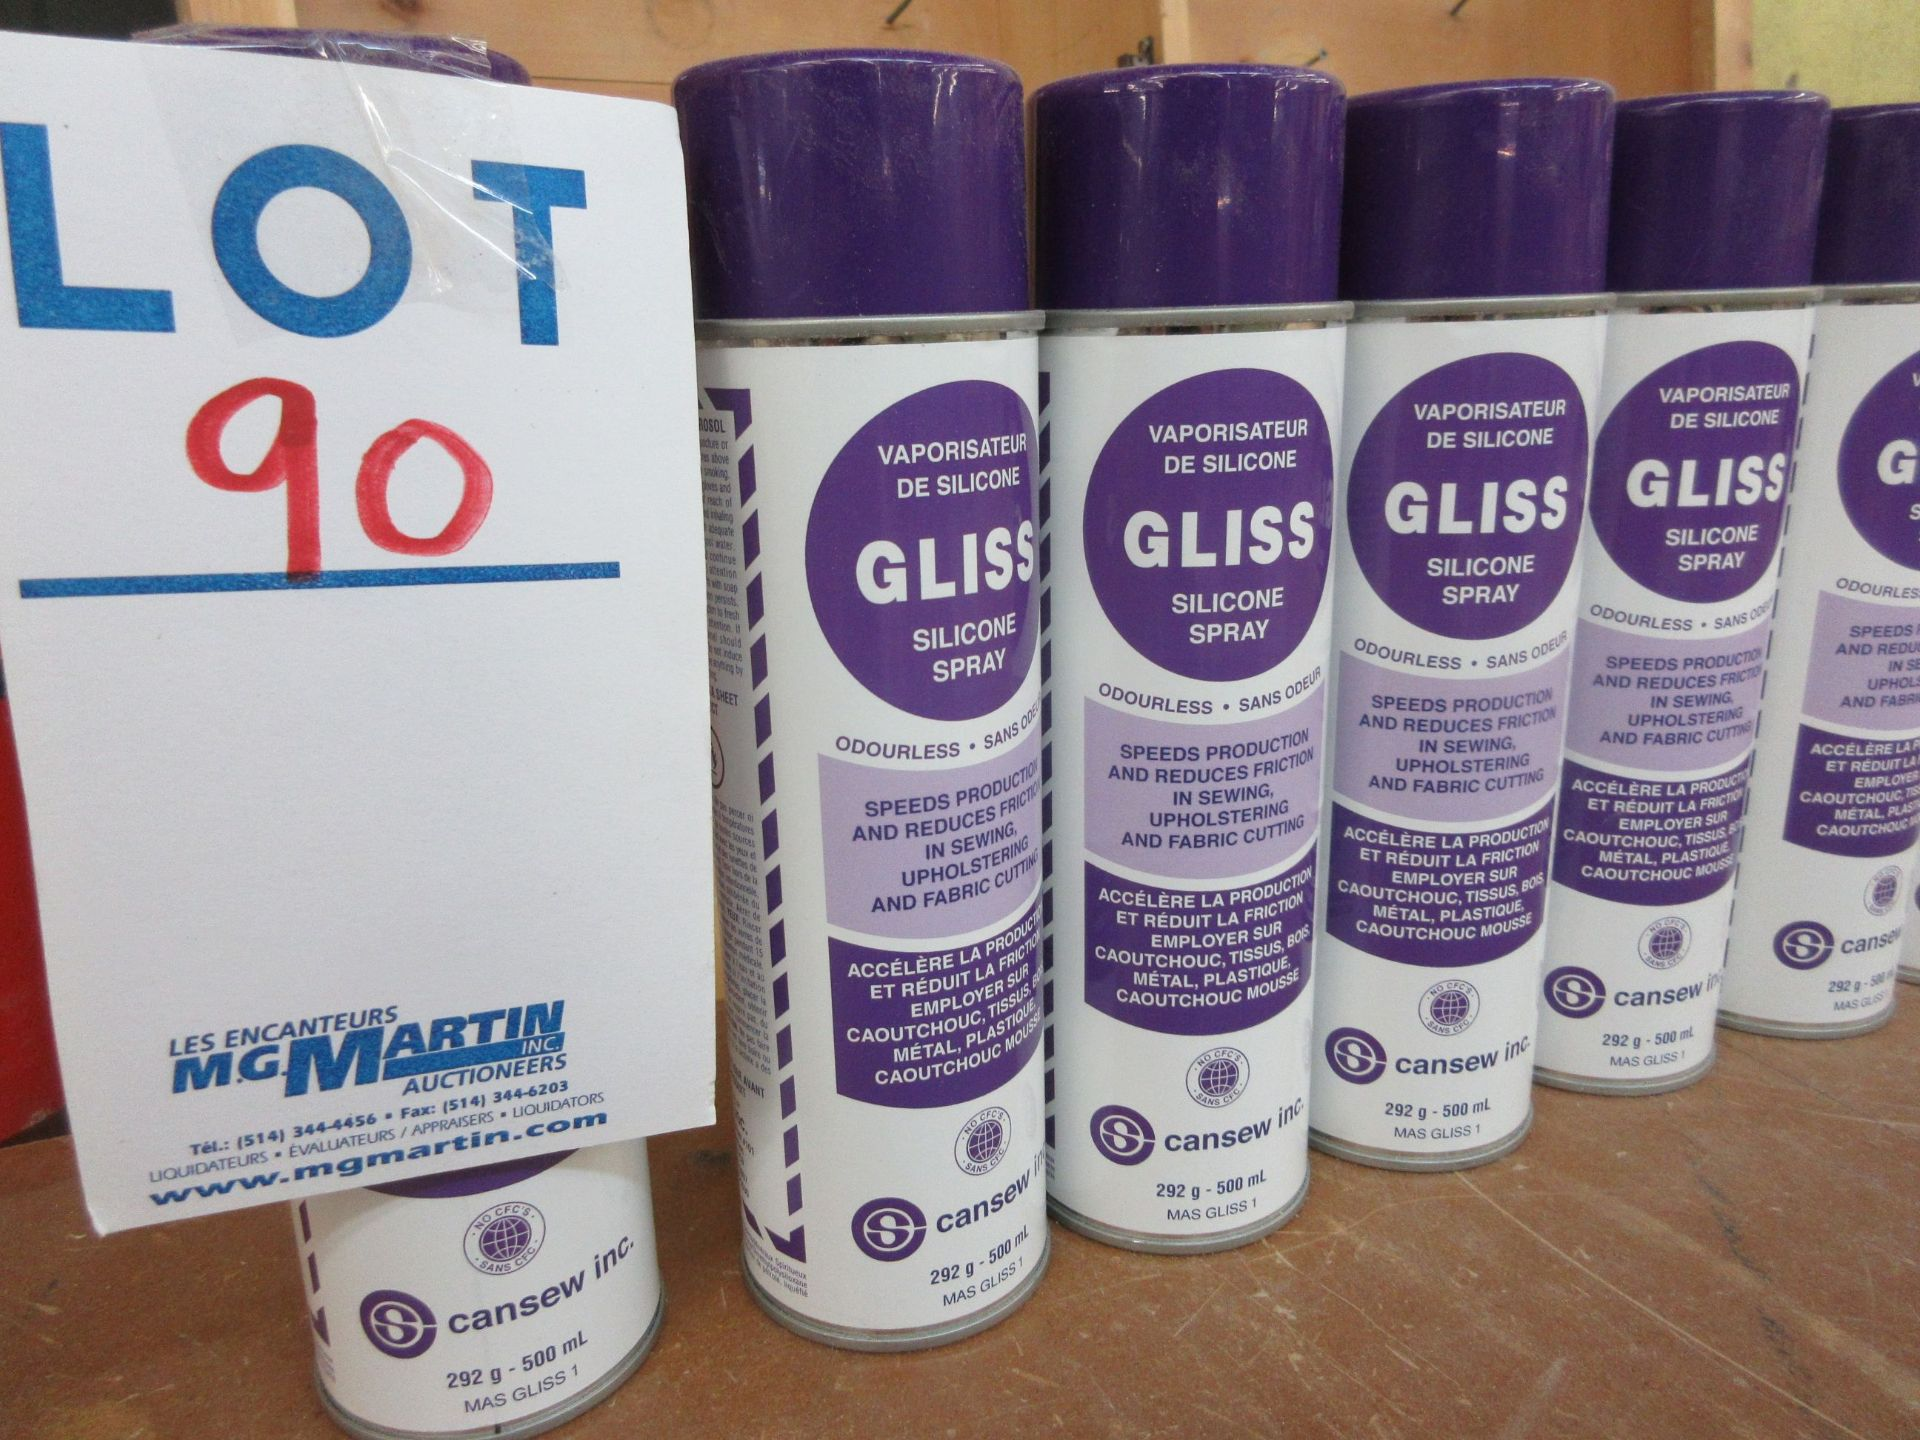 LOT Silicone spray (15) - Image 2 of 2